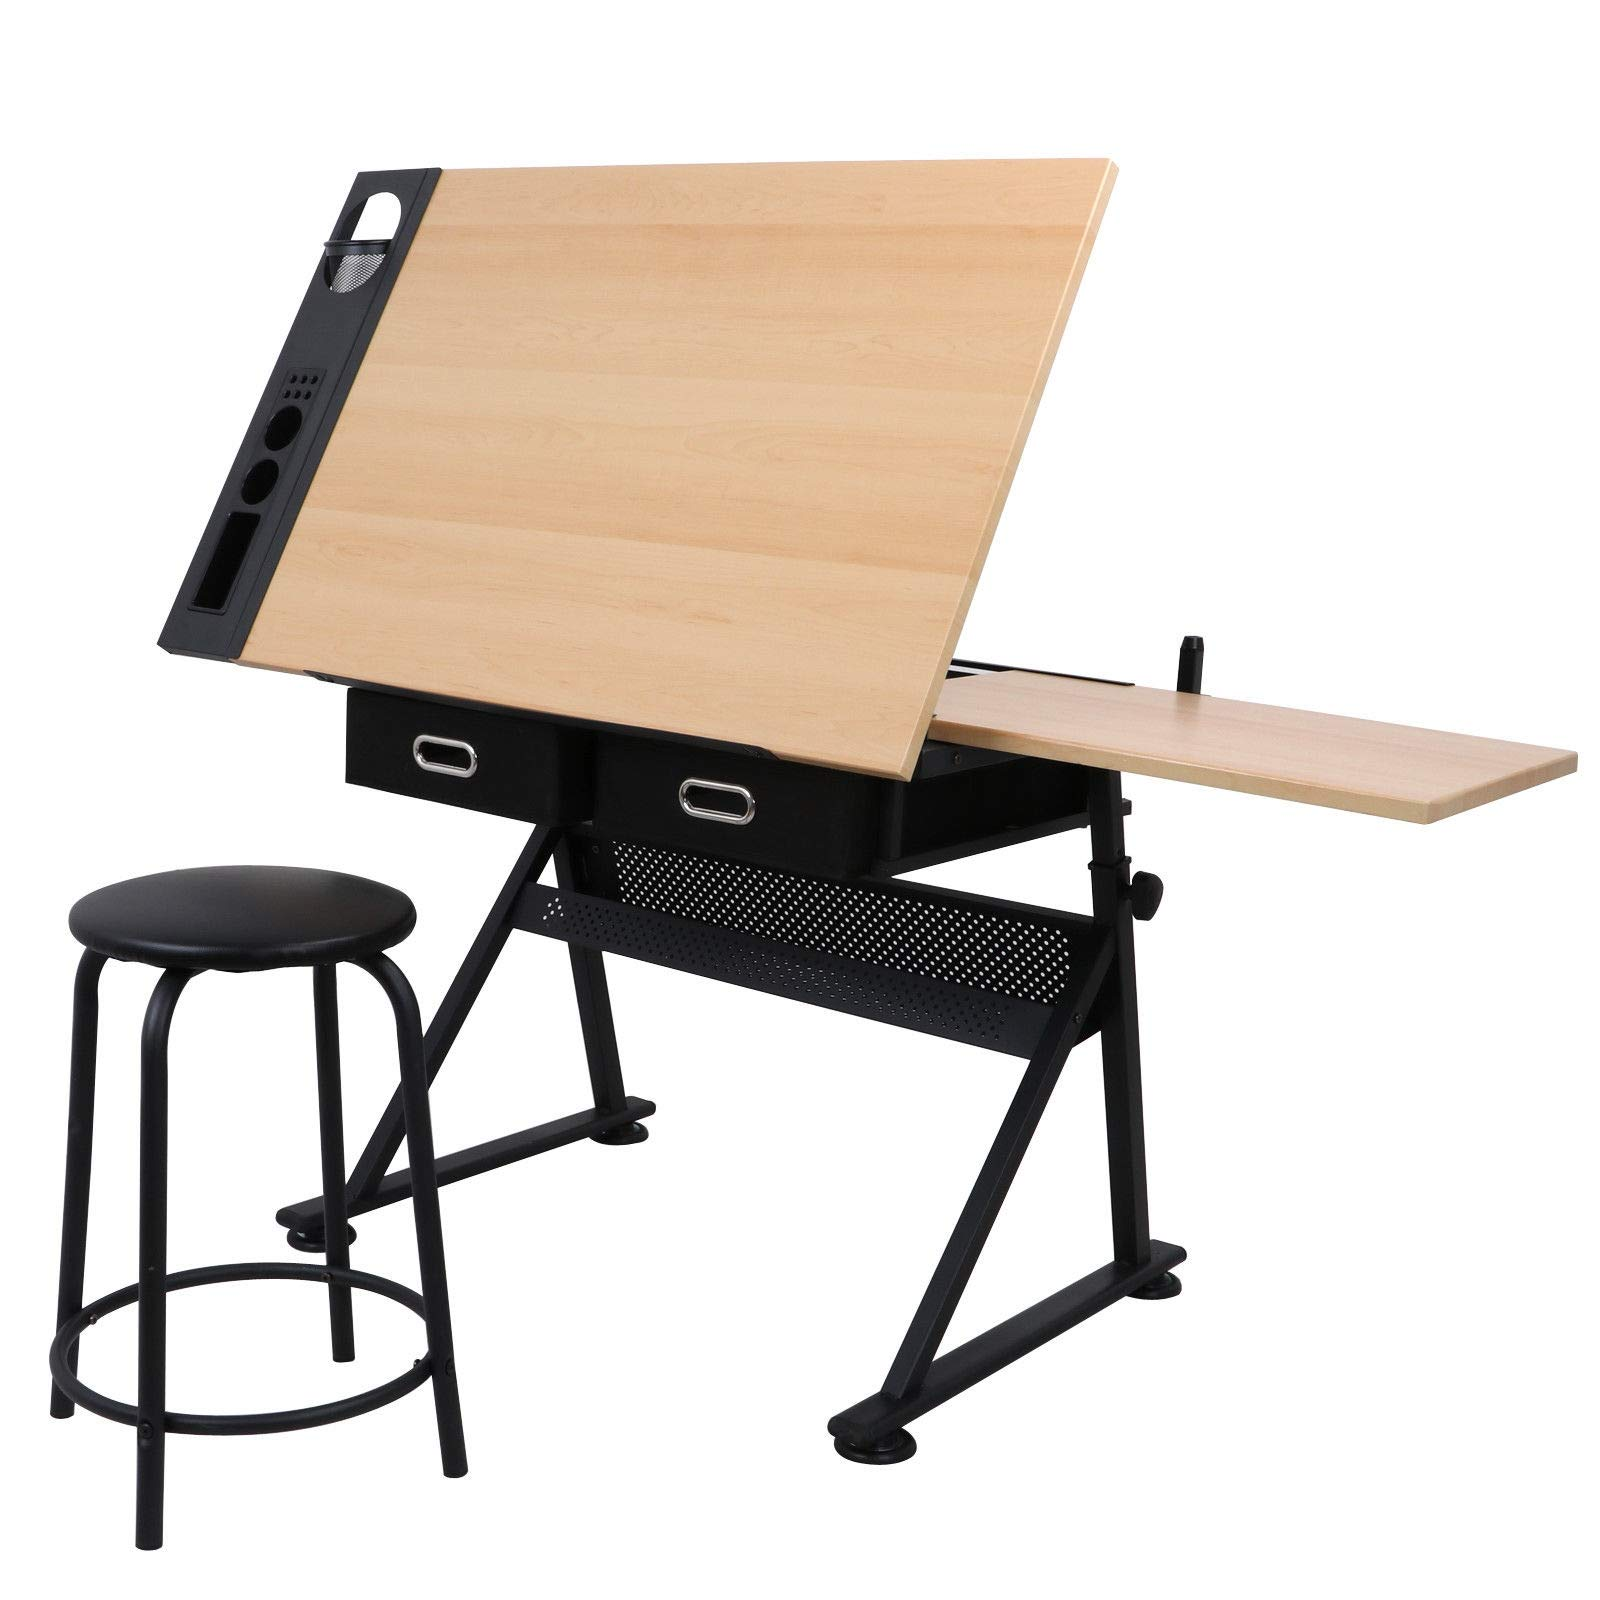 Modern Design Drafting Table W/Stool 2 Drawer Storage Stationery Sheet Stopper Iron Legs Adjustable Height Artist Home Office School Painted Accessories